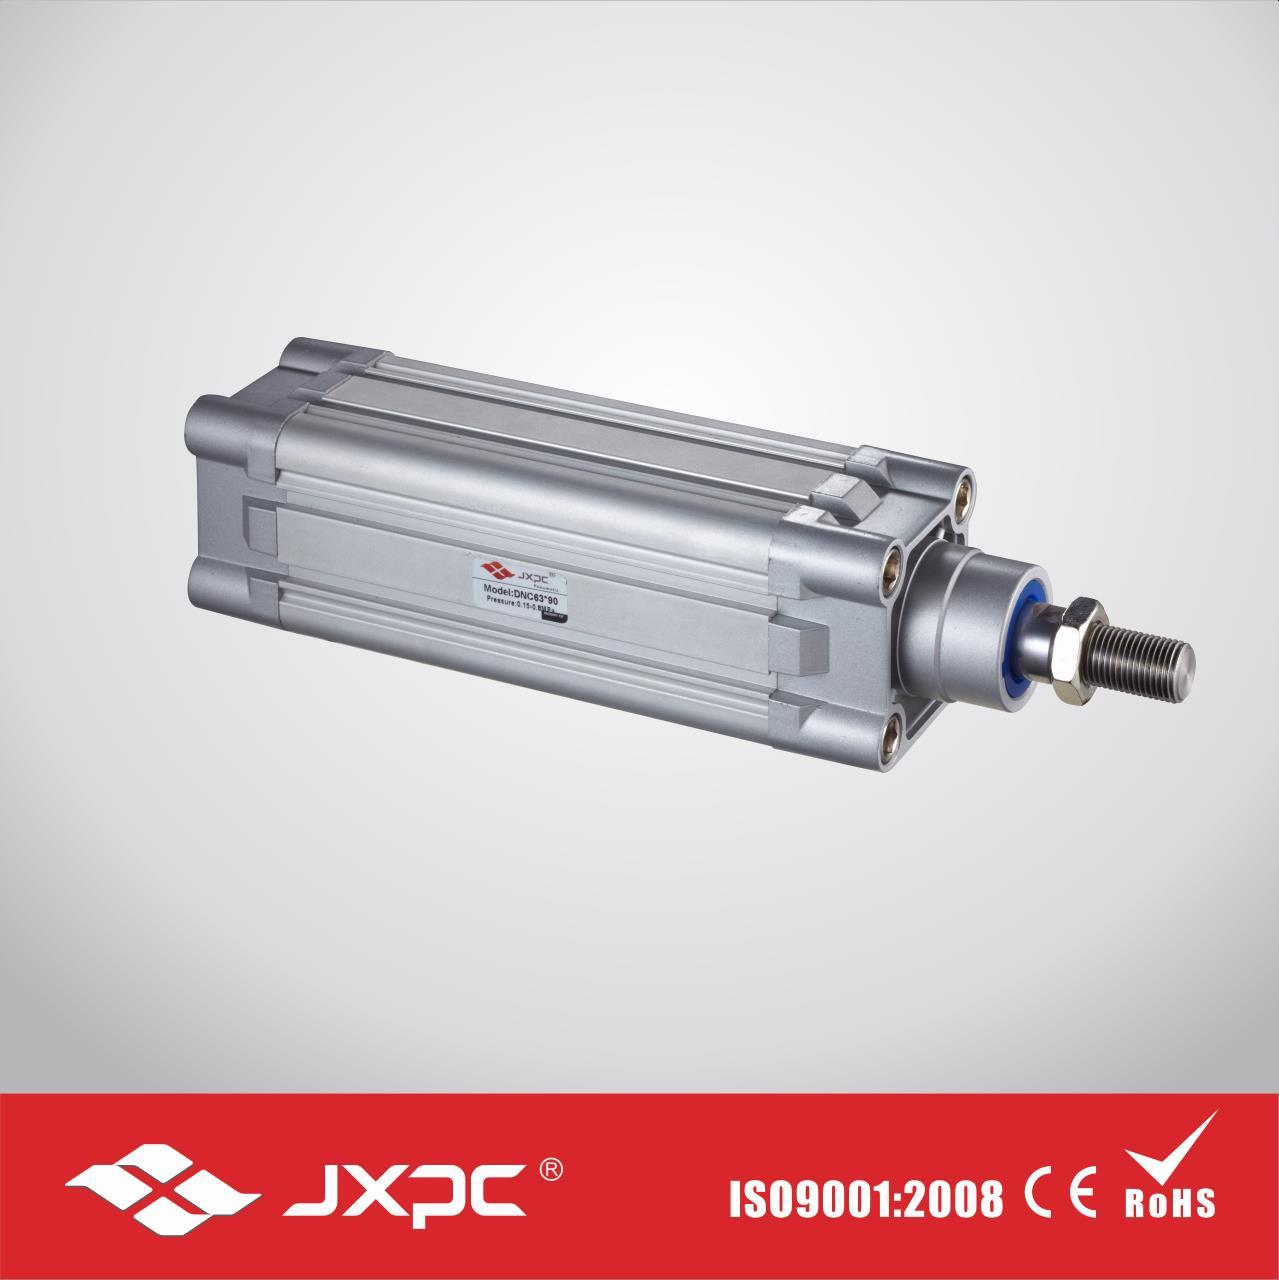 Cq2 Double Action Single Action Compact Pneumatic Cylinder pictures & photos